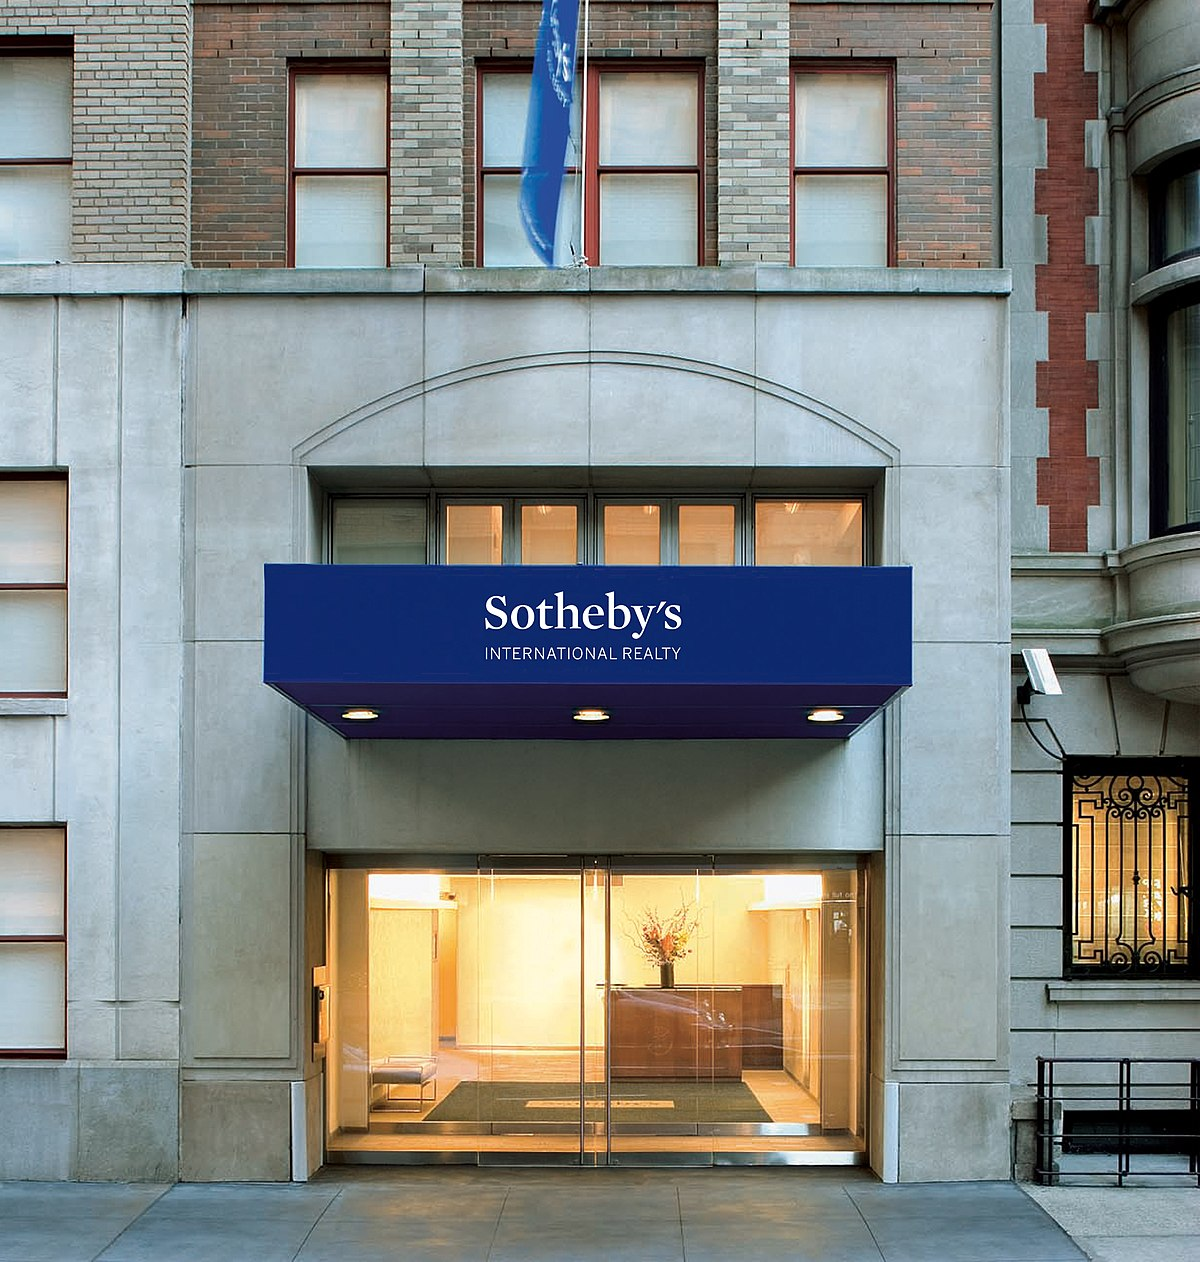 Sotheby's International Realty - Wikipedia